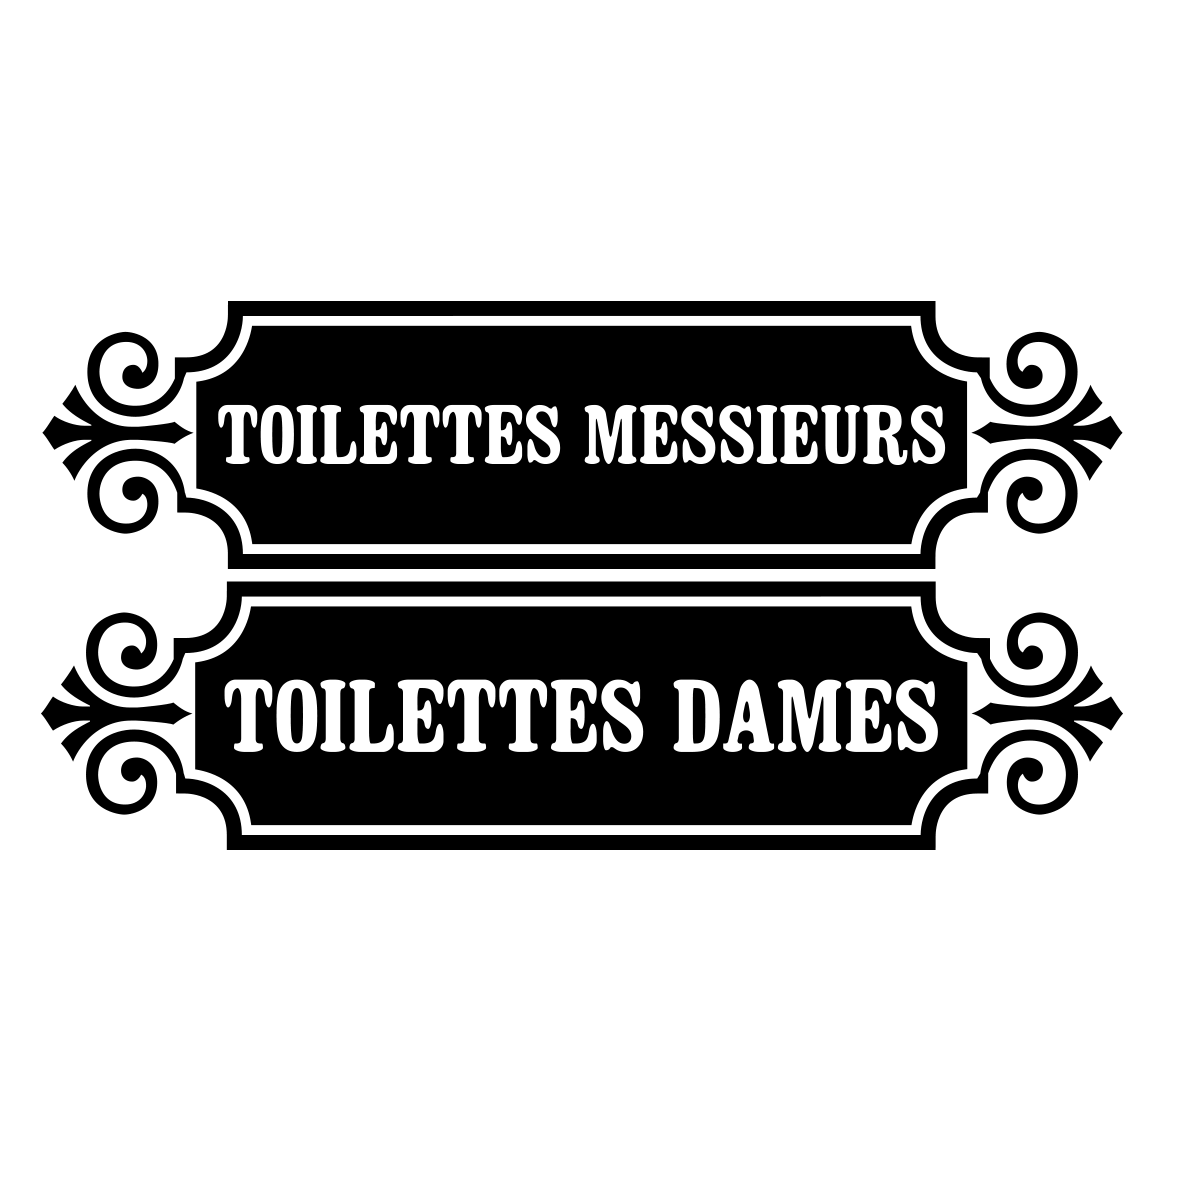 sticker porte toilettes messieurs toilettes dames stickers toilettes porte ambiance sticker. Black Bedroom Furniture Sets. Home Design Ideas